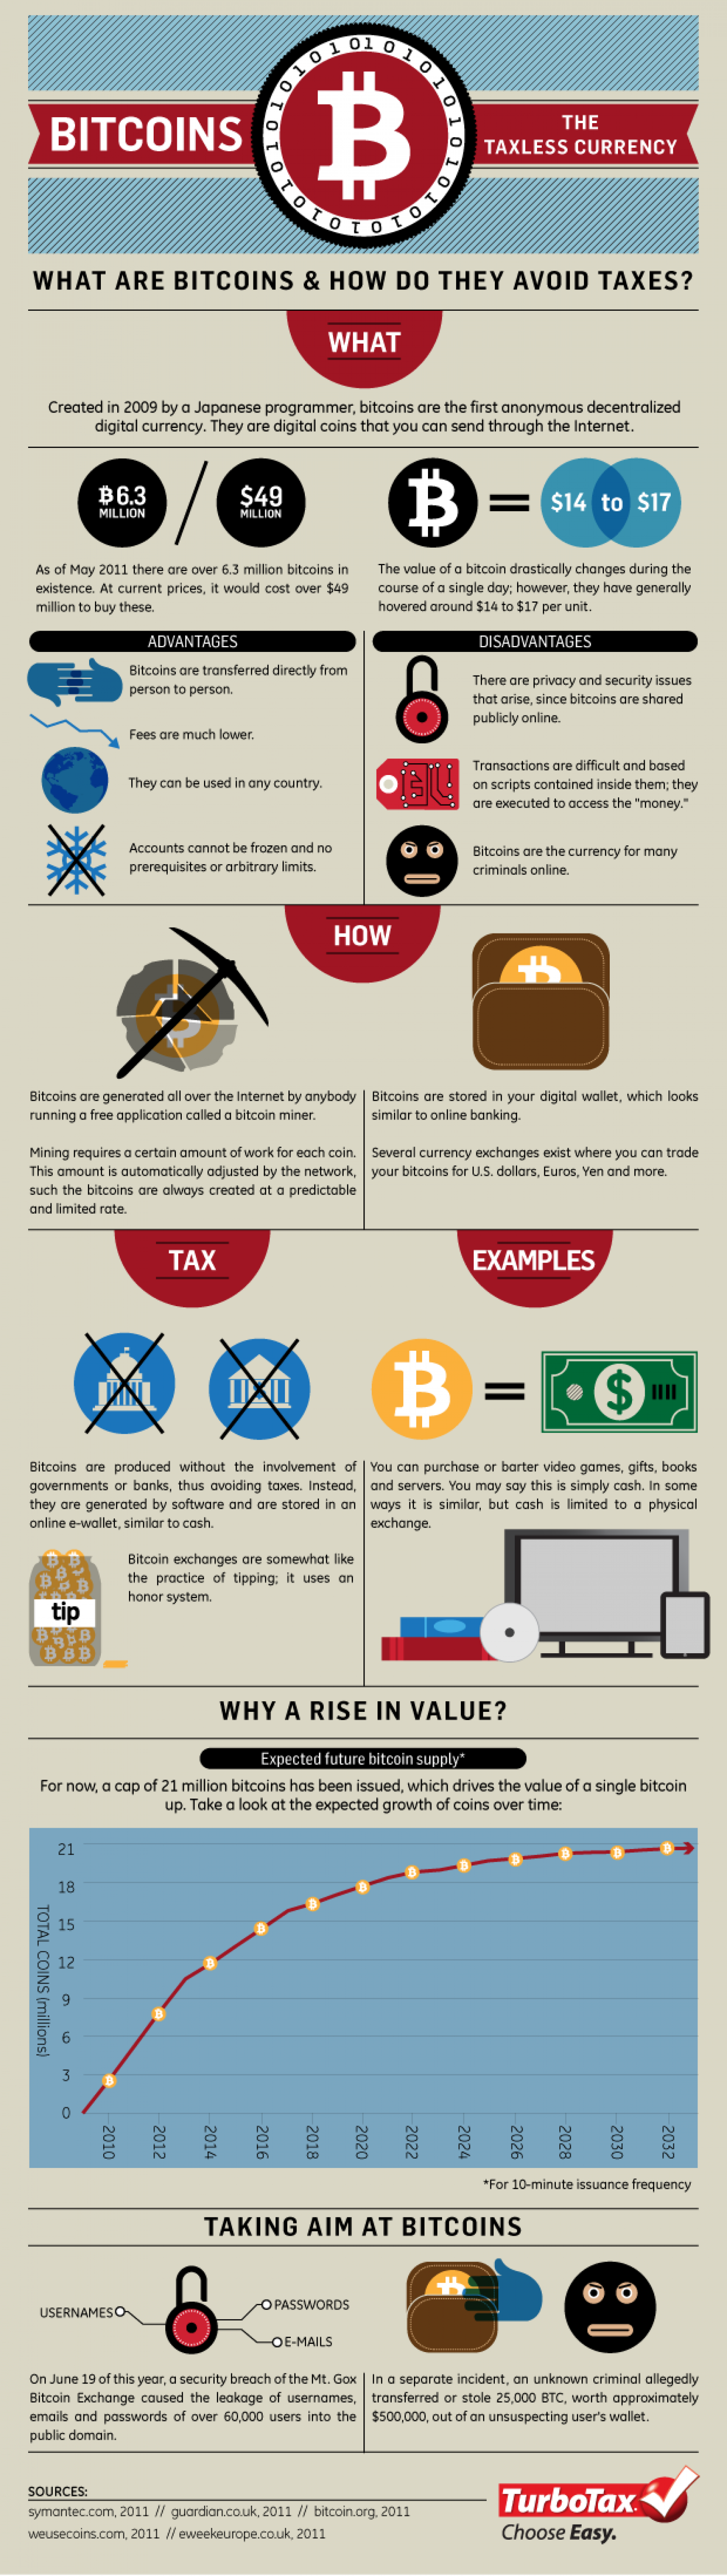 Bitcoins: The Taxless Currency Infographic